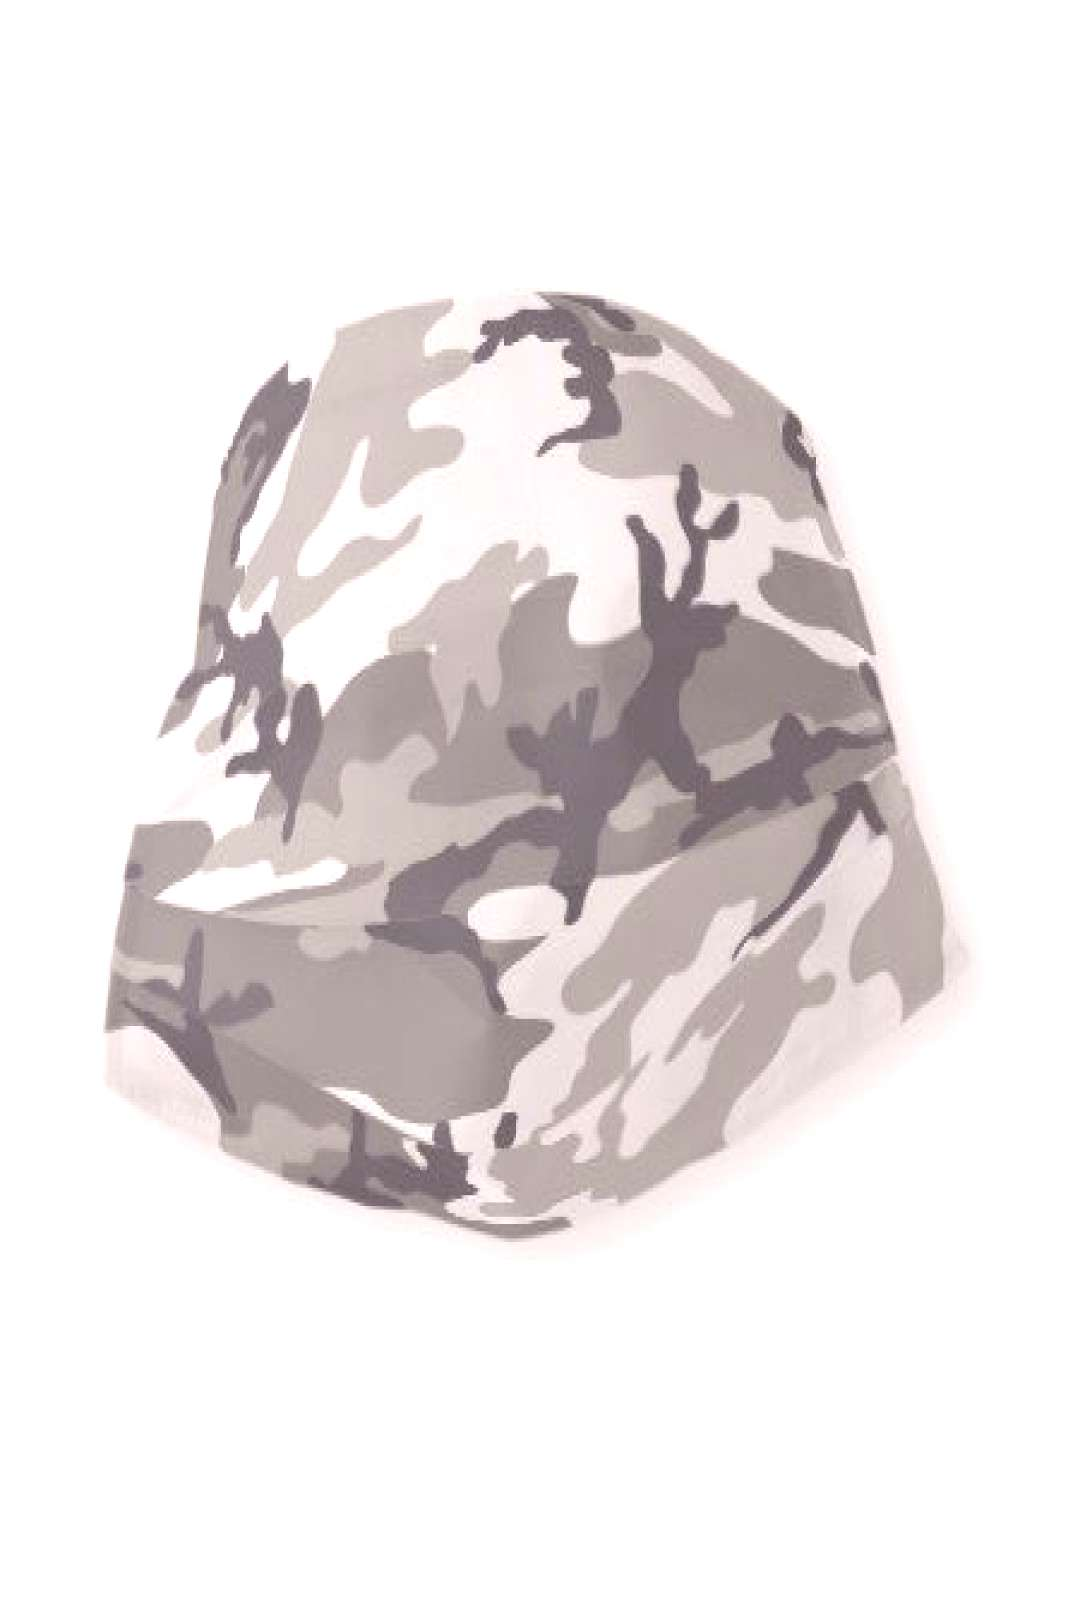 Urban Camo Pattern Cloth Face Mask - tap, personalize, buy right now!